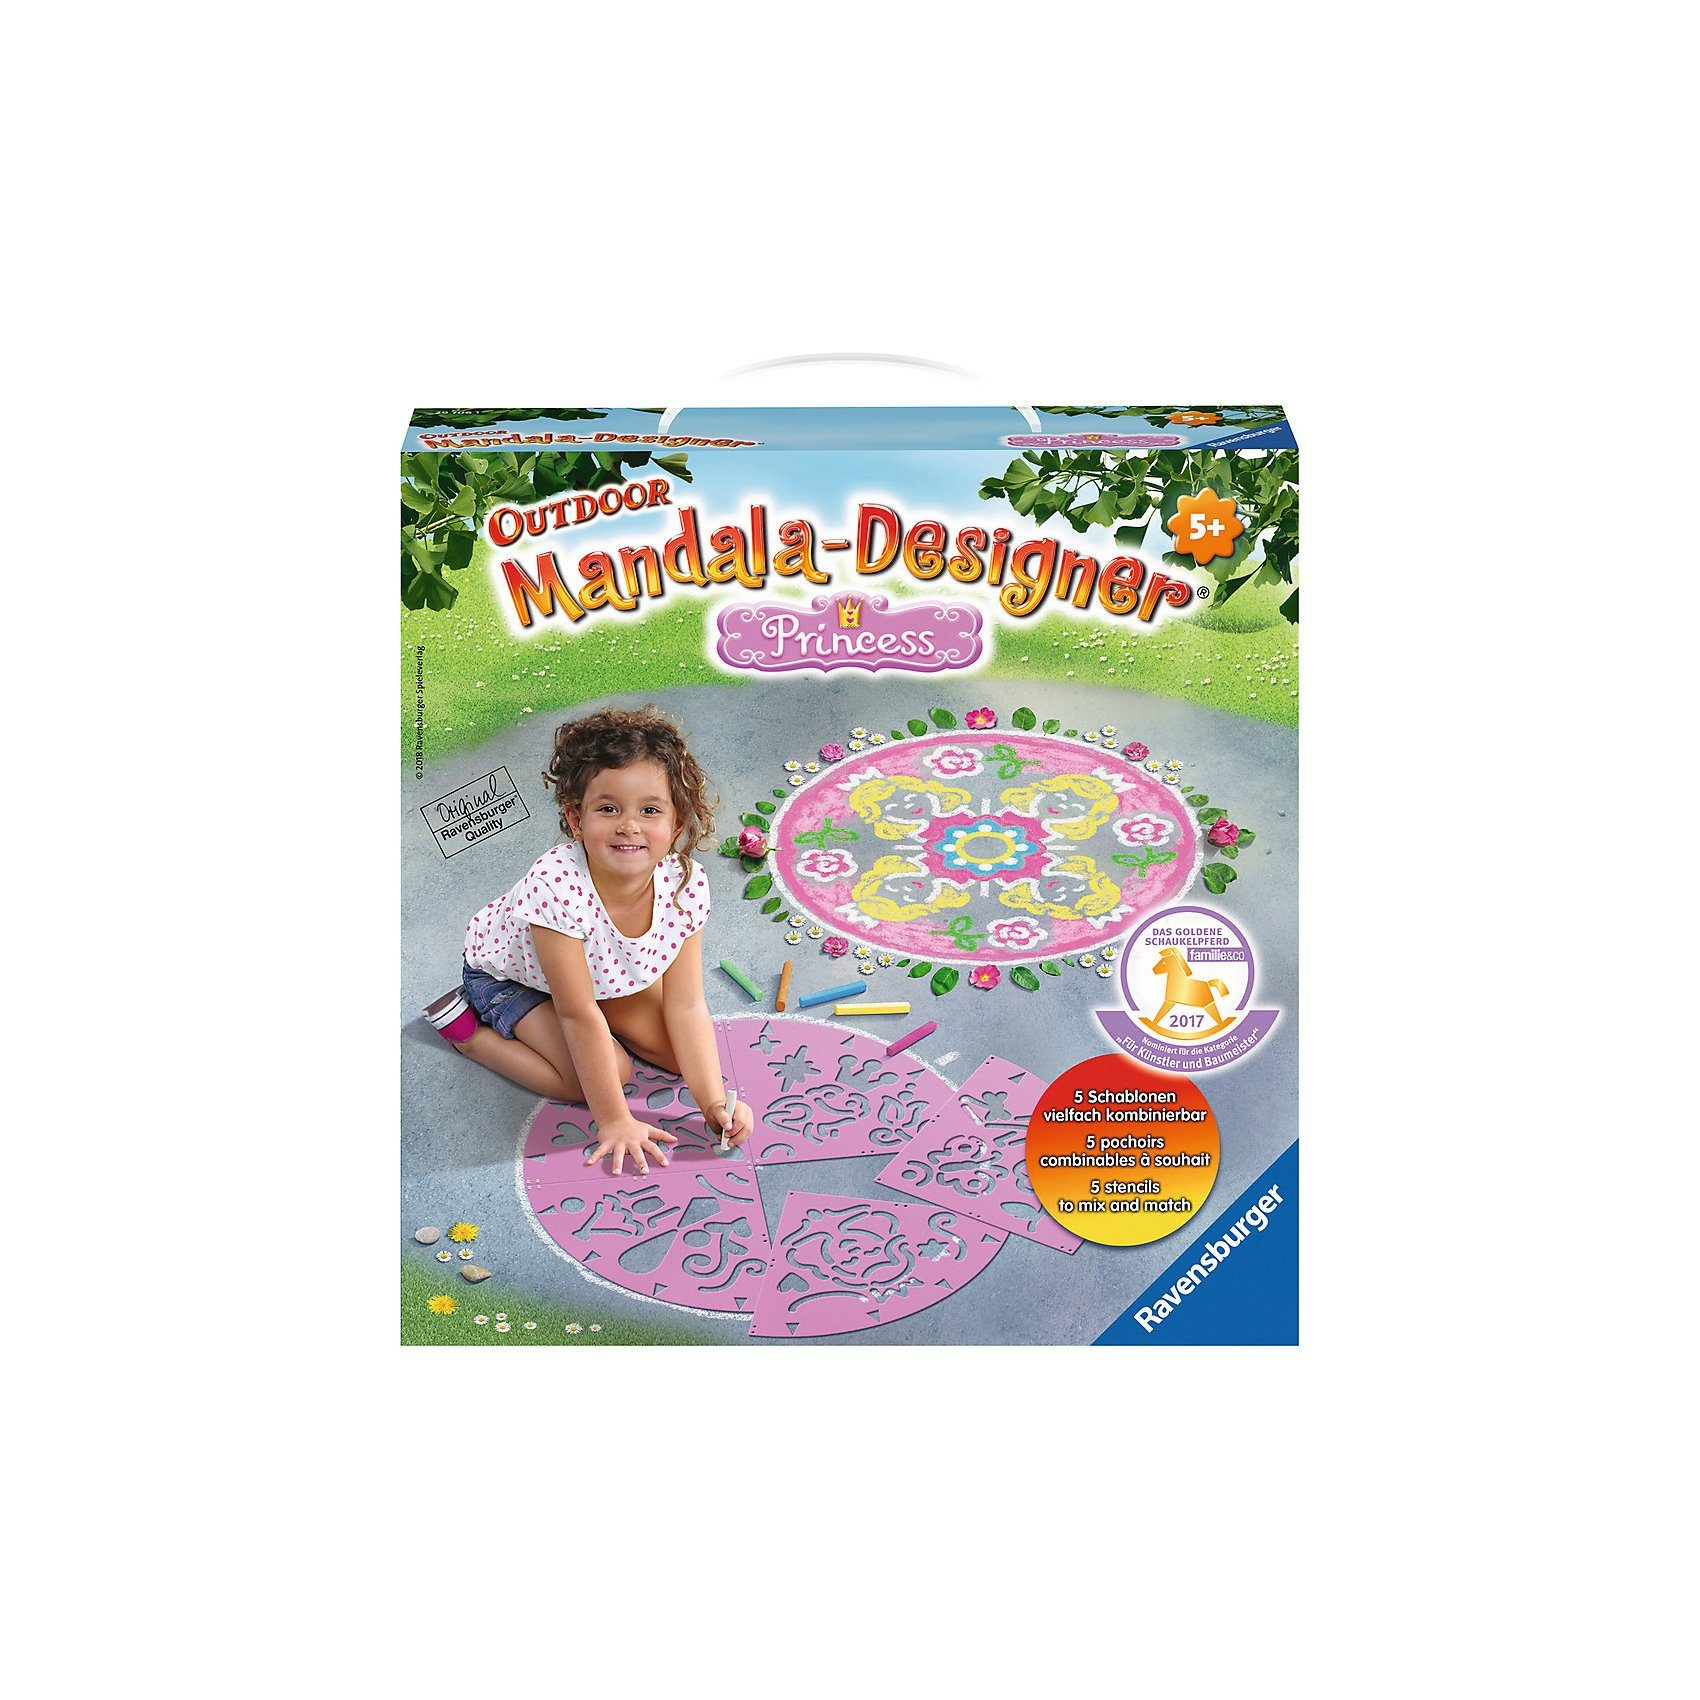 Ravensburger Outdoor Mandala Designer Princess